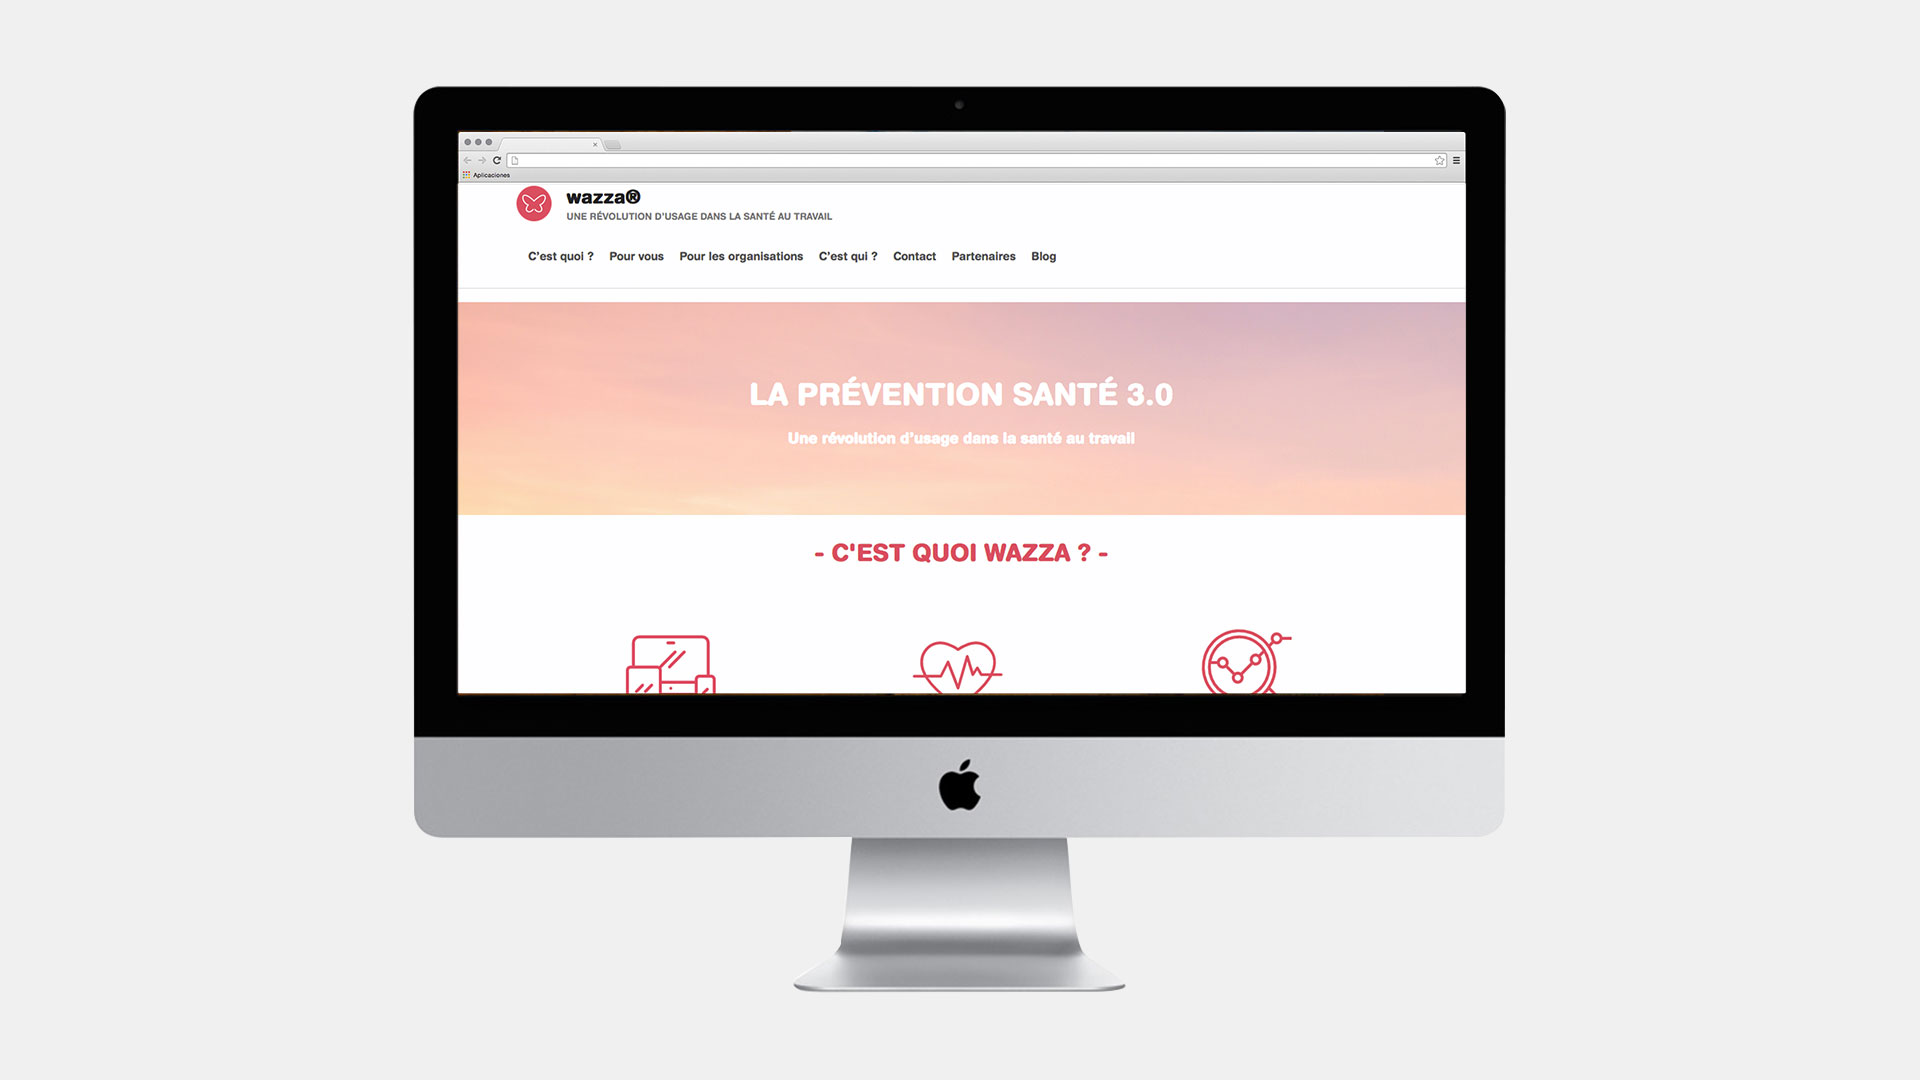 wazza-developpement-api-rest-sur-mesure-developpeur-freelance-bordeaux-jeremy-peltier